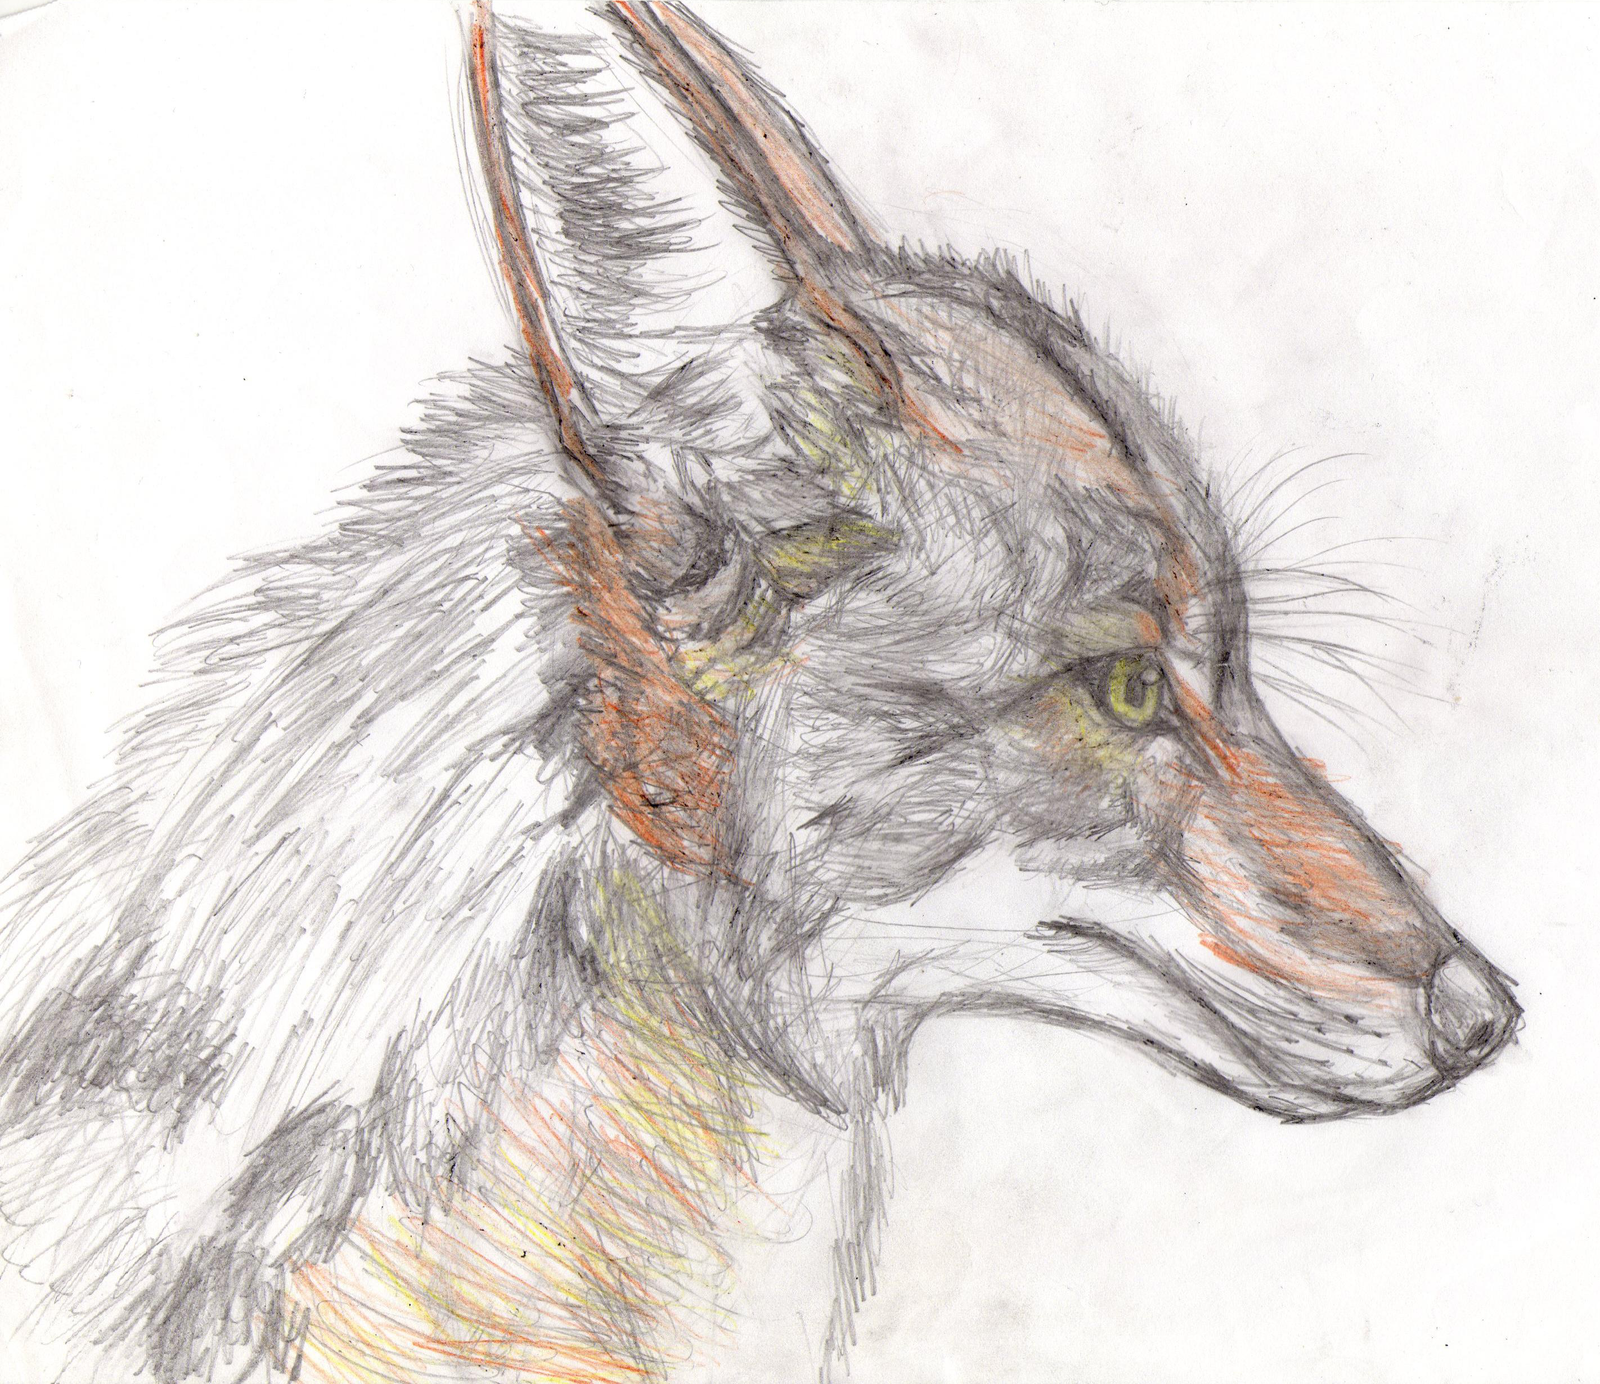 Coyote head drawing - photo#2